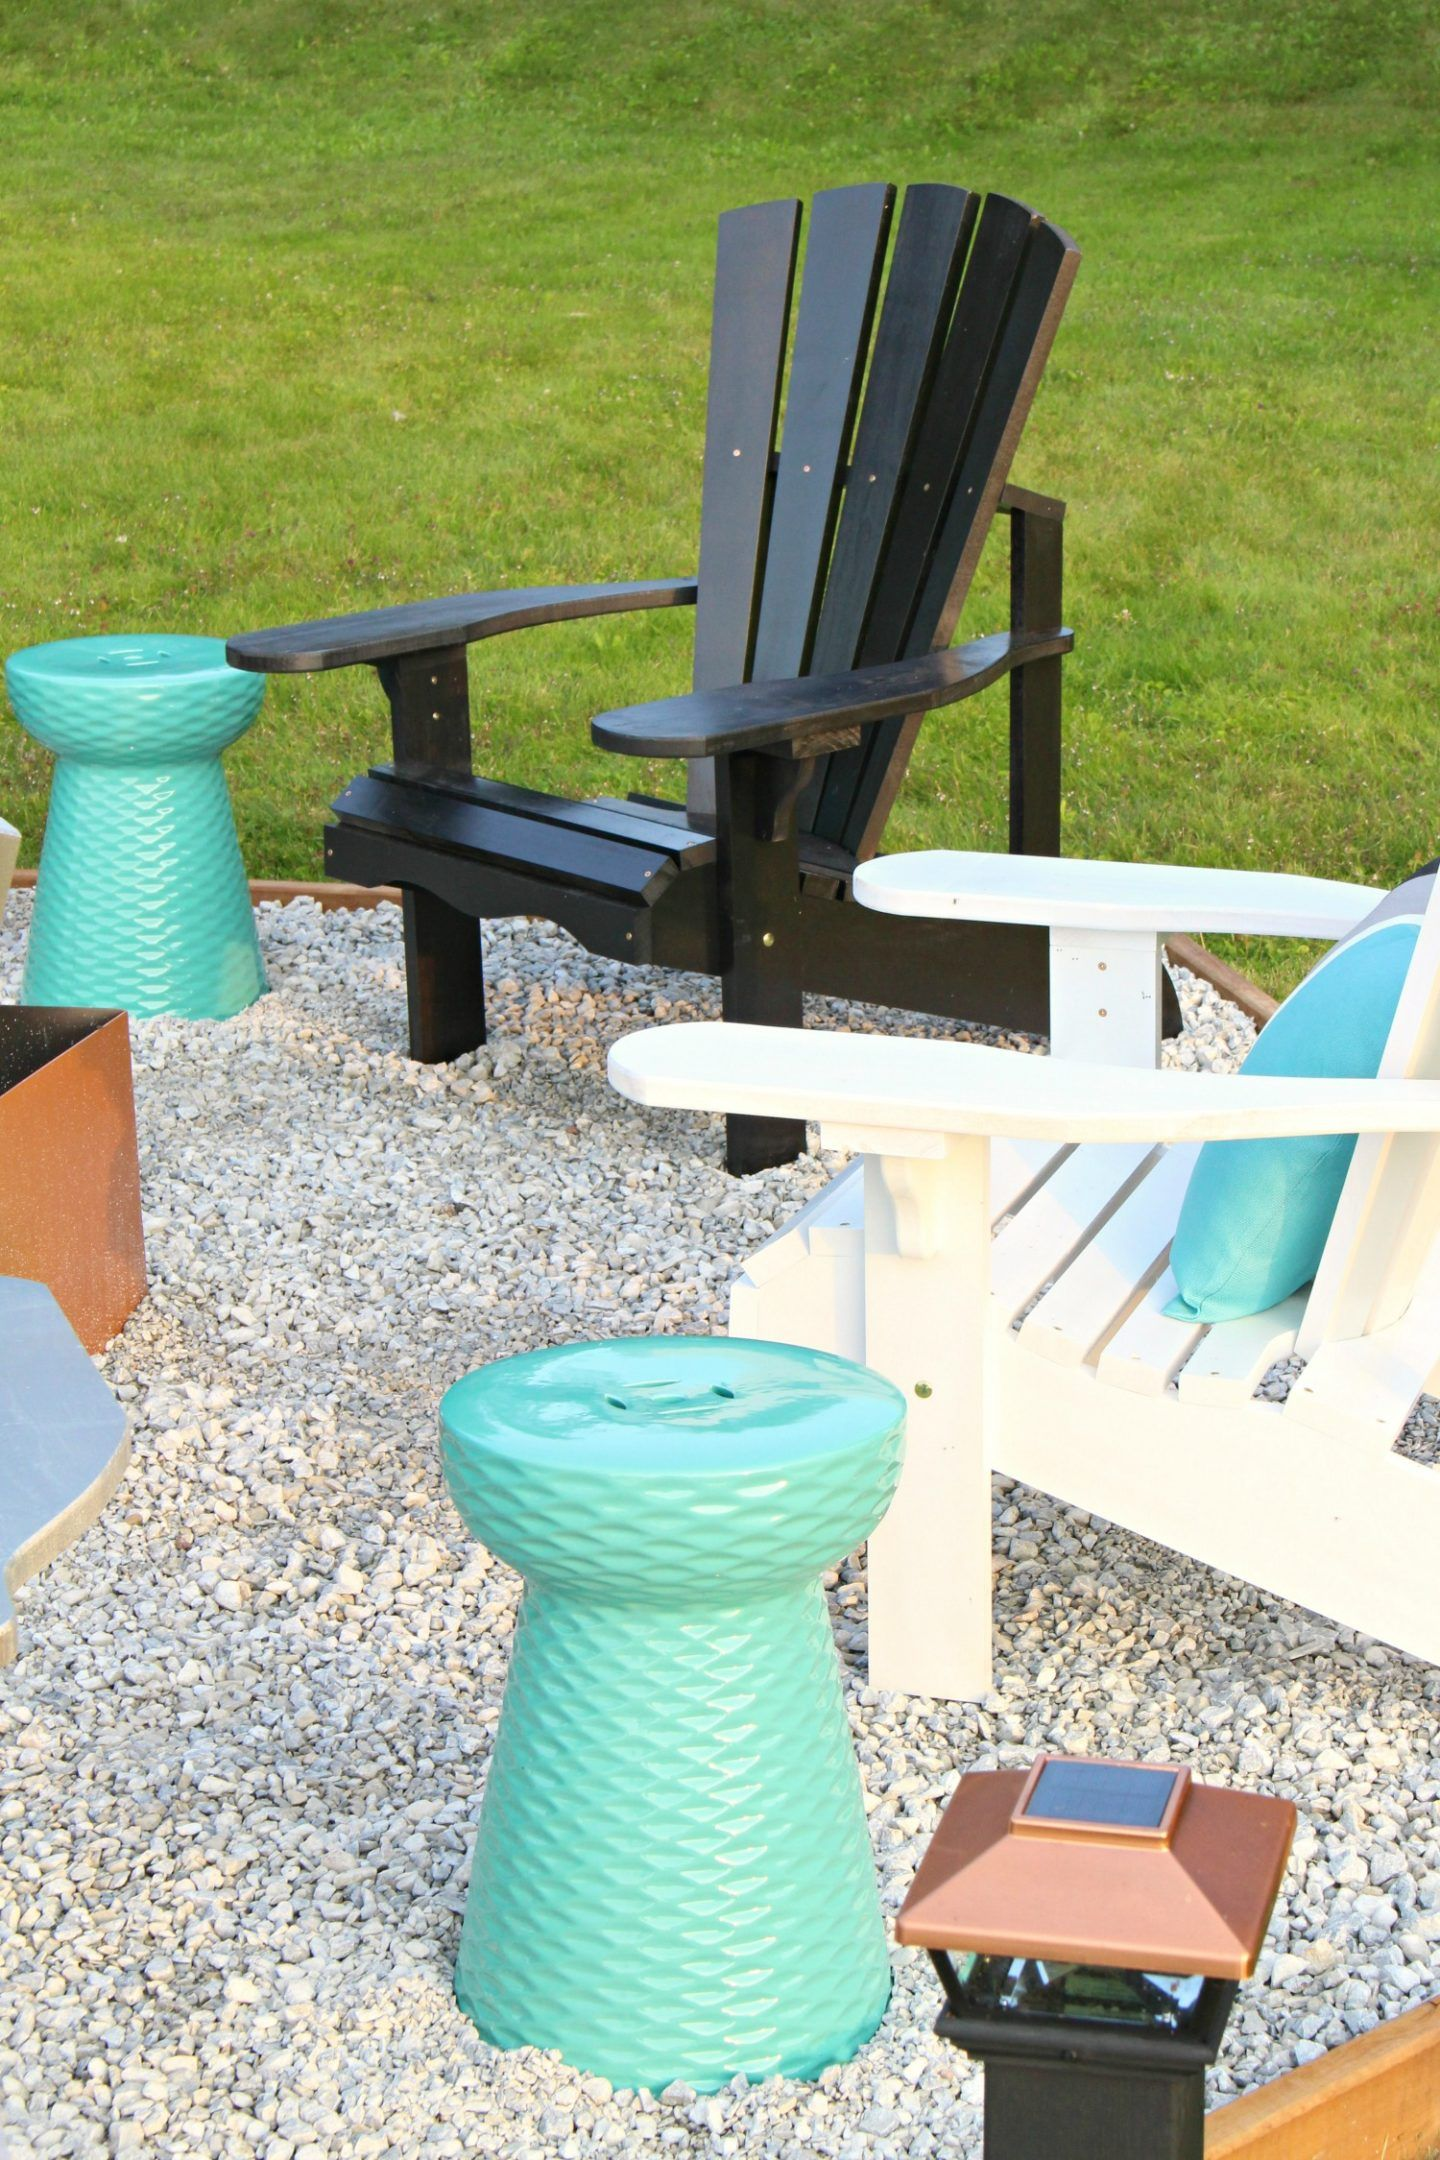 Fire Pit Makeover + DIY Ombre Adirondack Chairs (Sponsored